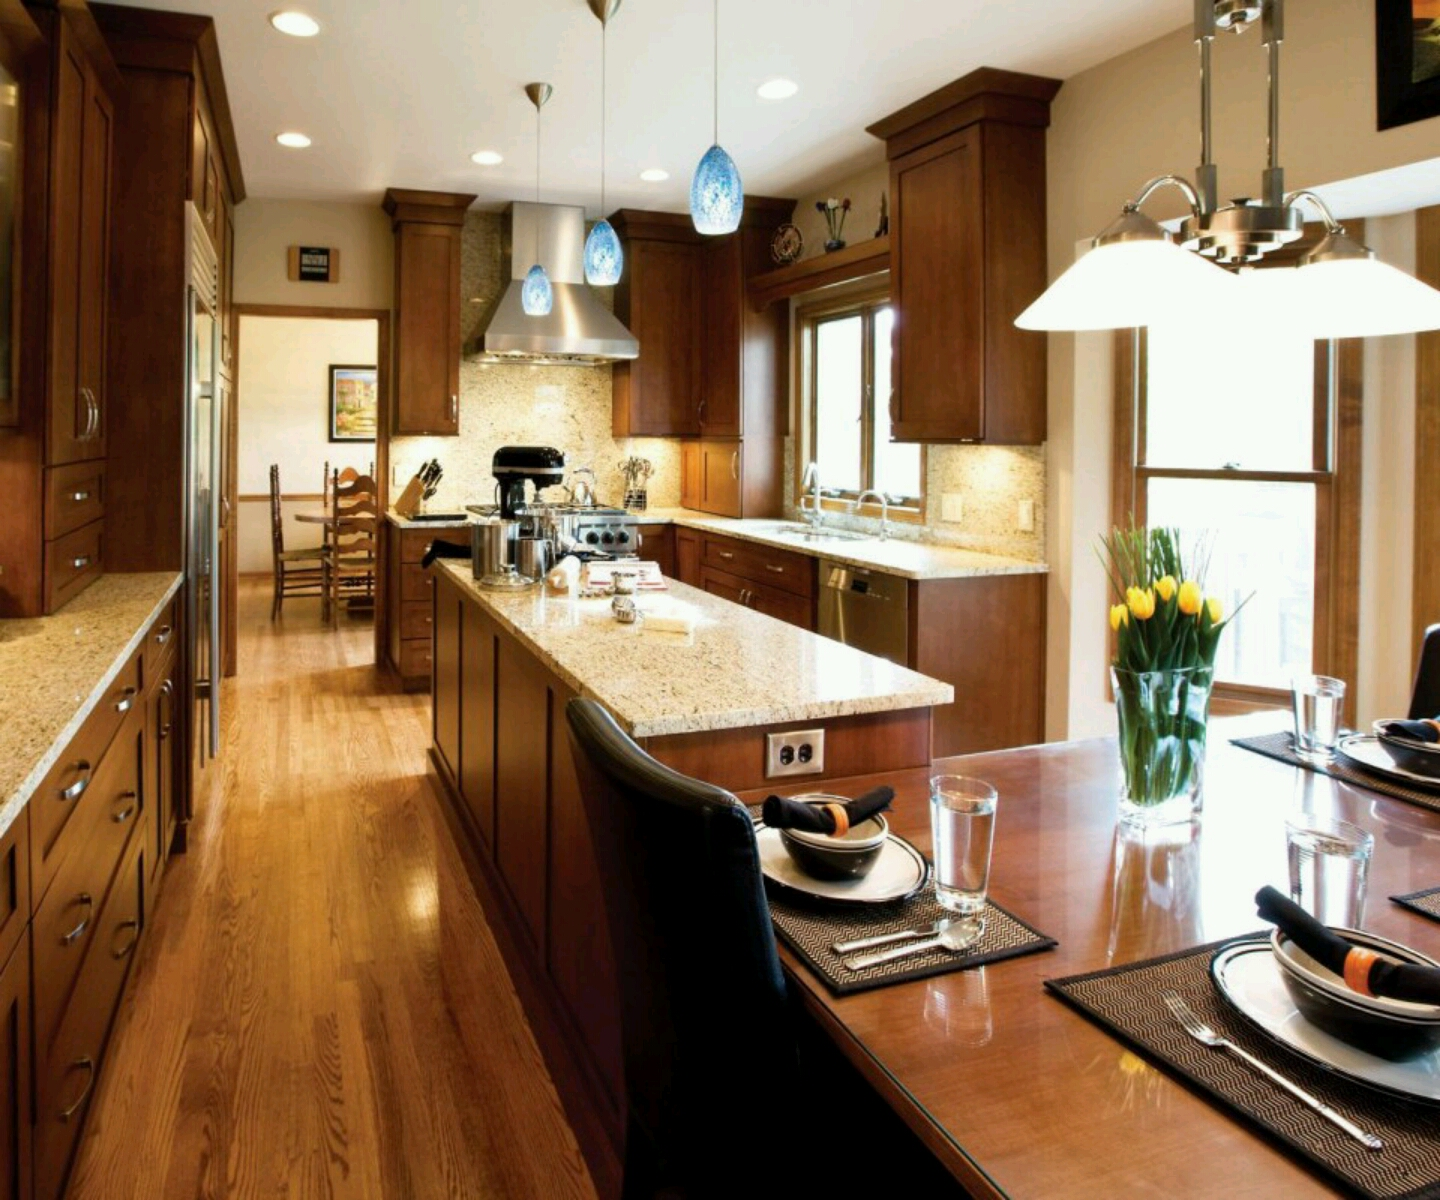 New home designs latest kitchen cabinets designs modern for Latest kitchen units designs